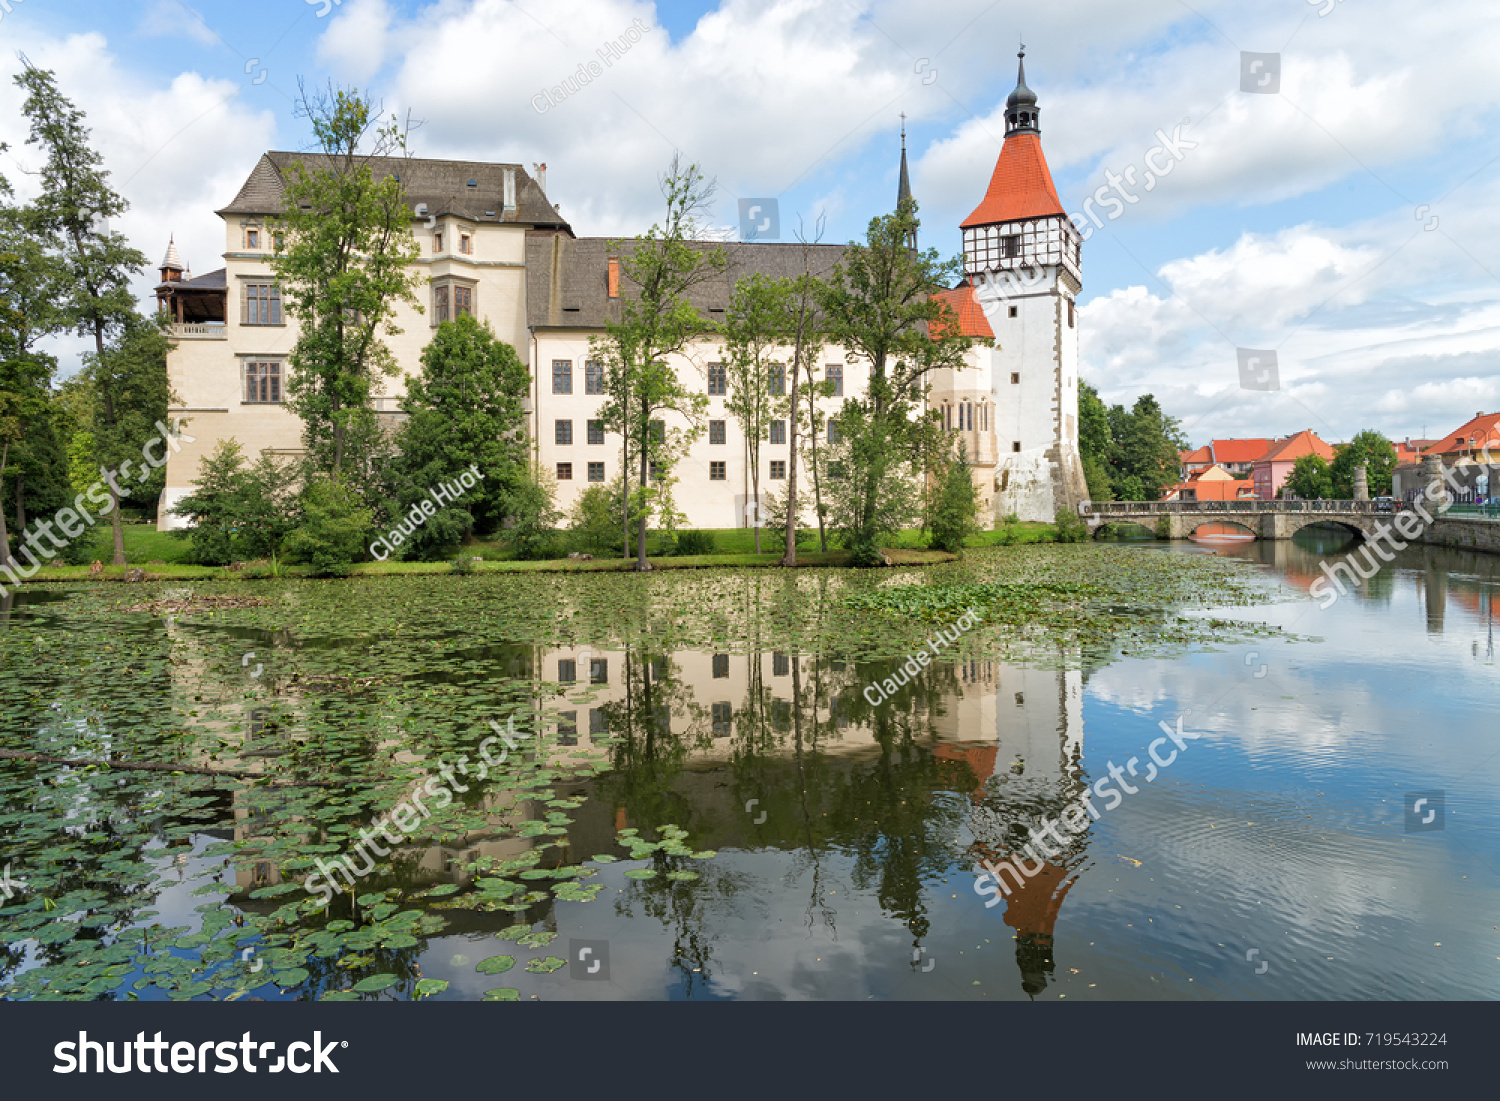 View of the Blatna Castle in the Czech Republic with reflection in the water